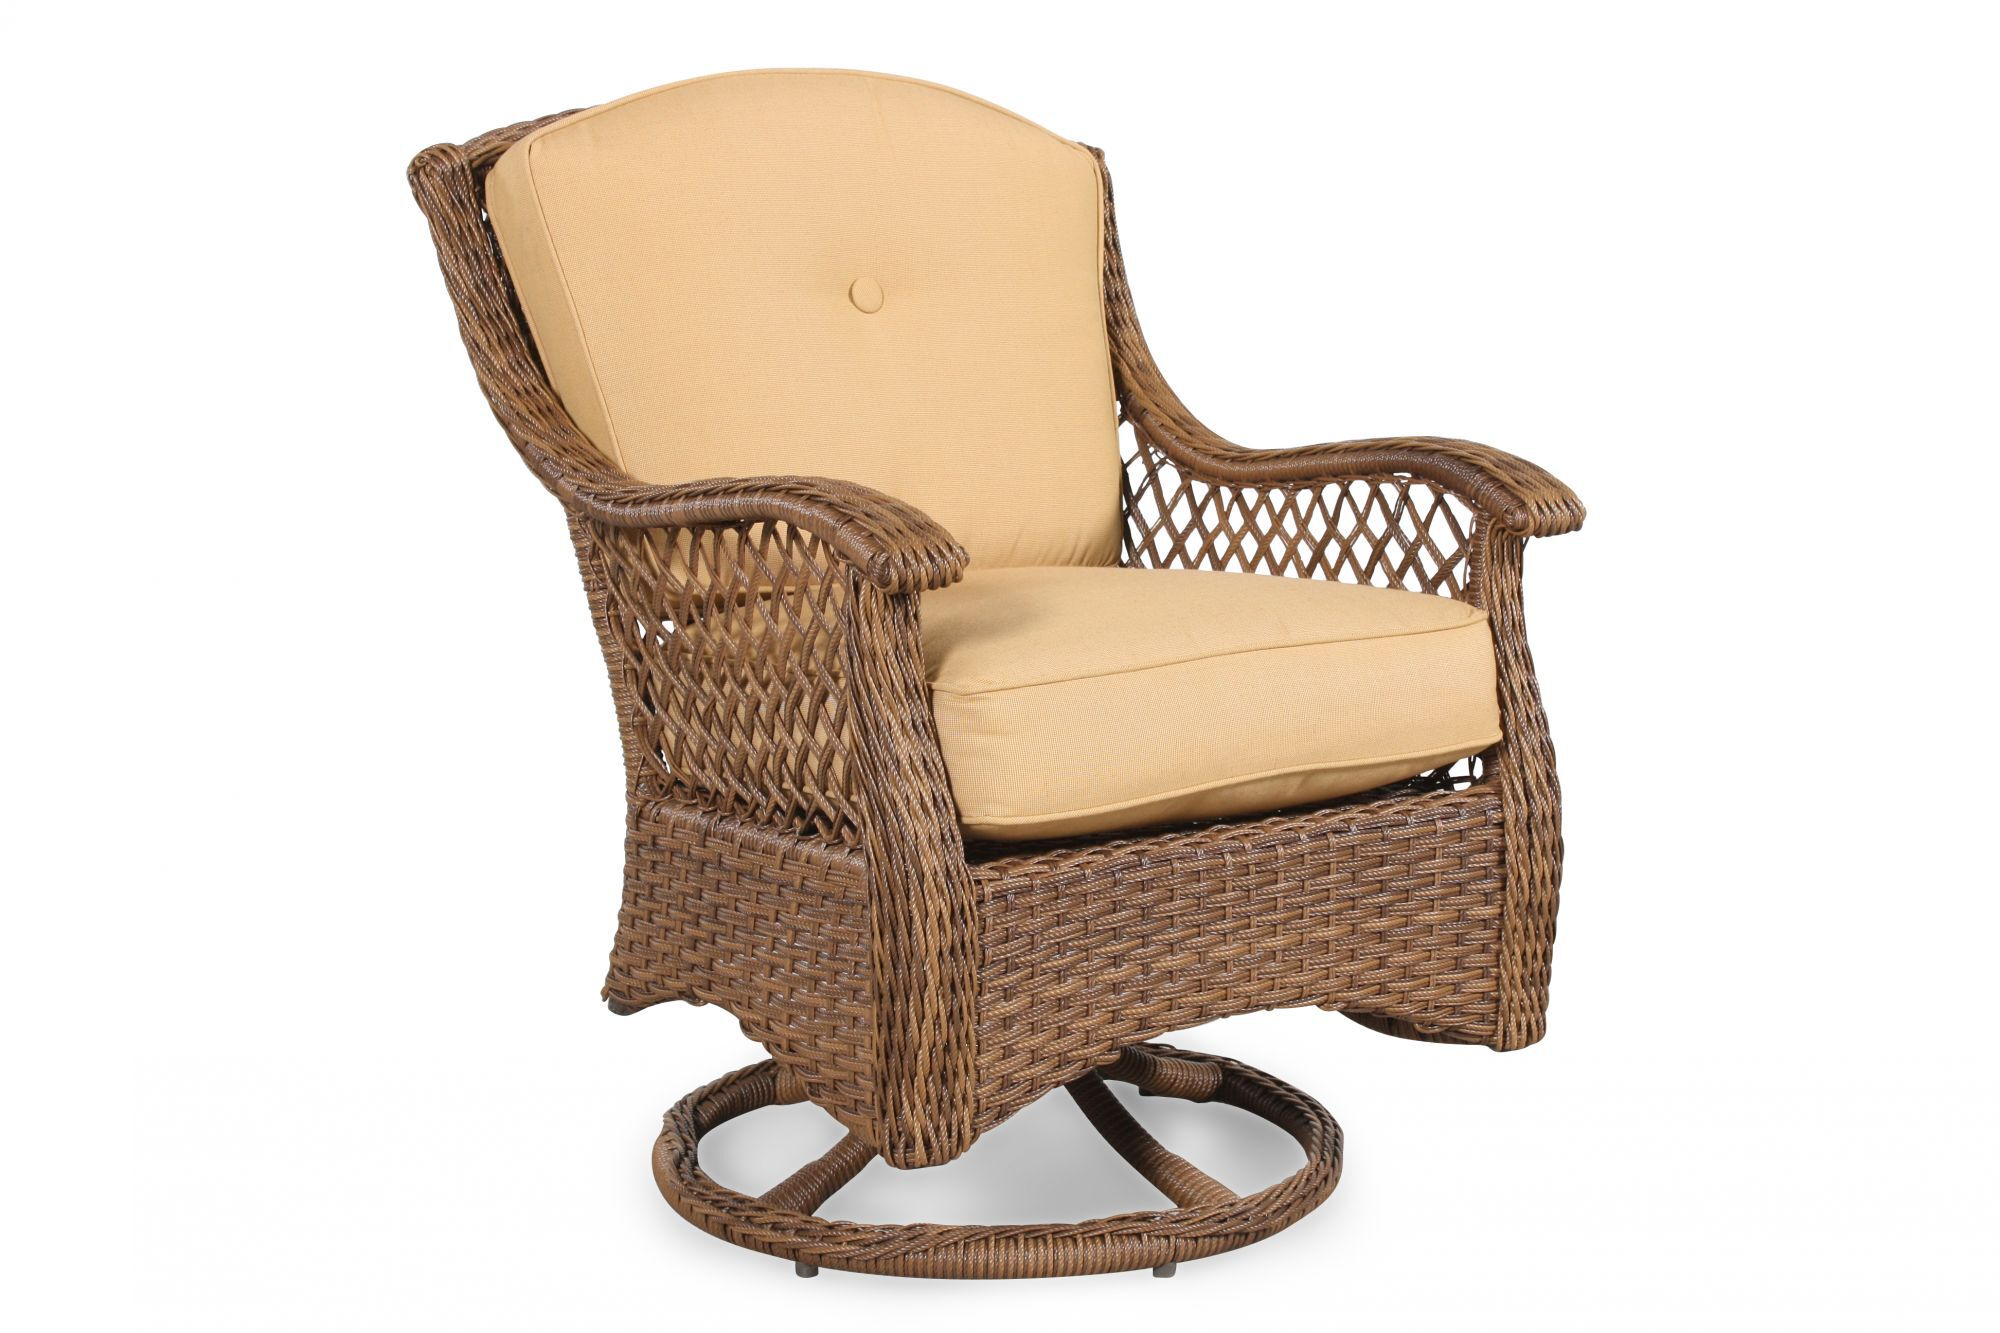 patio swivel rocker chairs country kitchen chair cushions curved arm casual in brown mathis